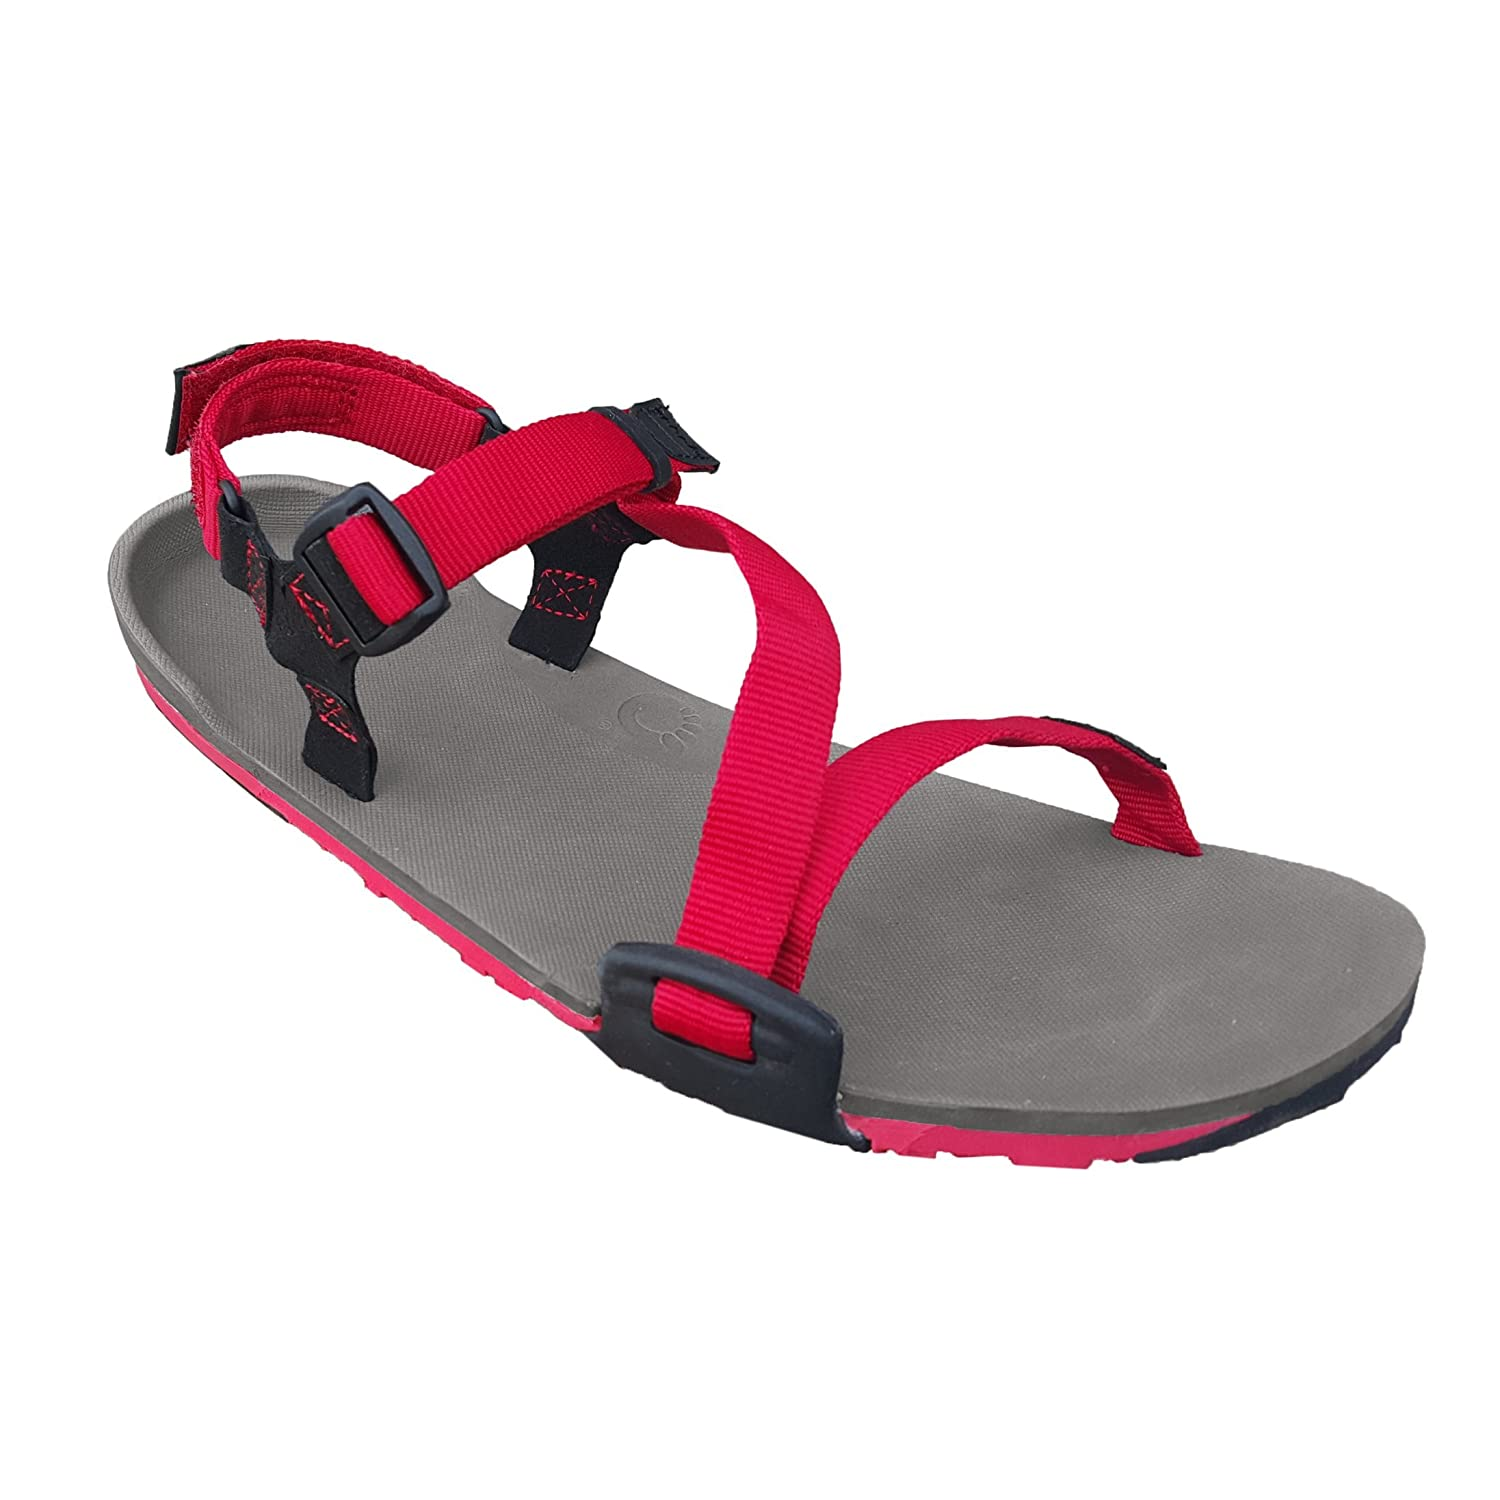 Xero Shoes Z-Trail Lightweight Sandal - Barefoot-Inspired Hiking, Trail, Running Sport Sandals - Women's B01D2302T0 5 B(M) US|Charcoal/ Red Pepper